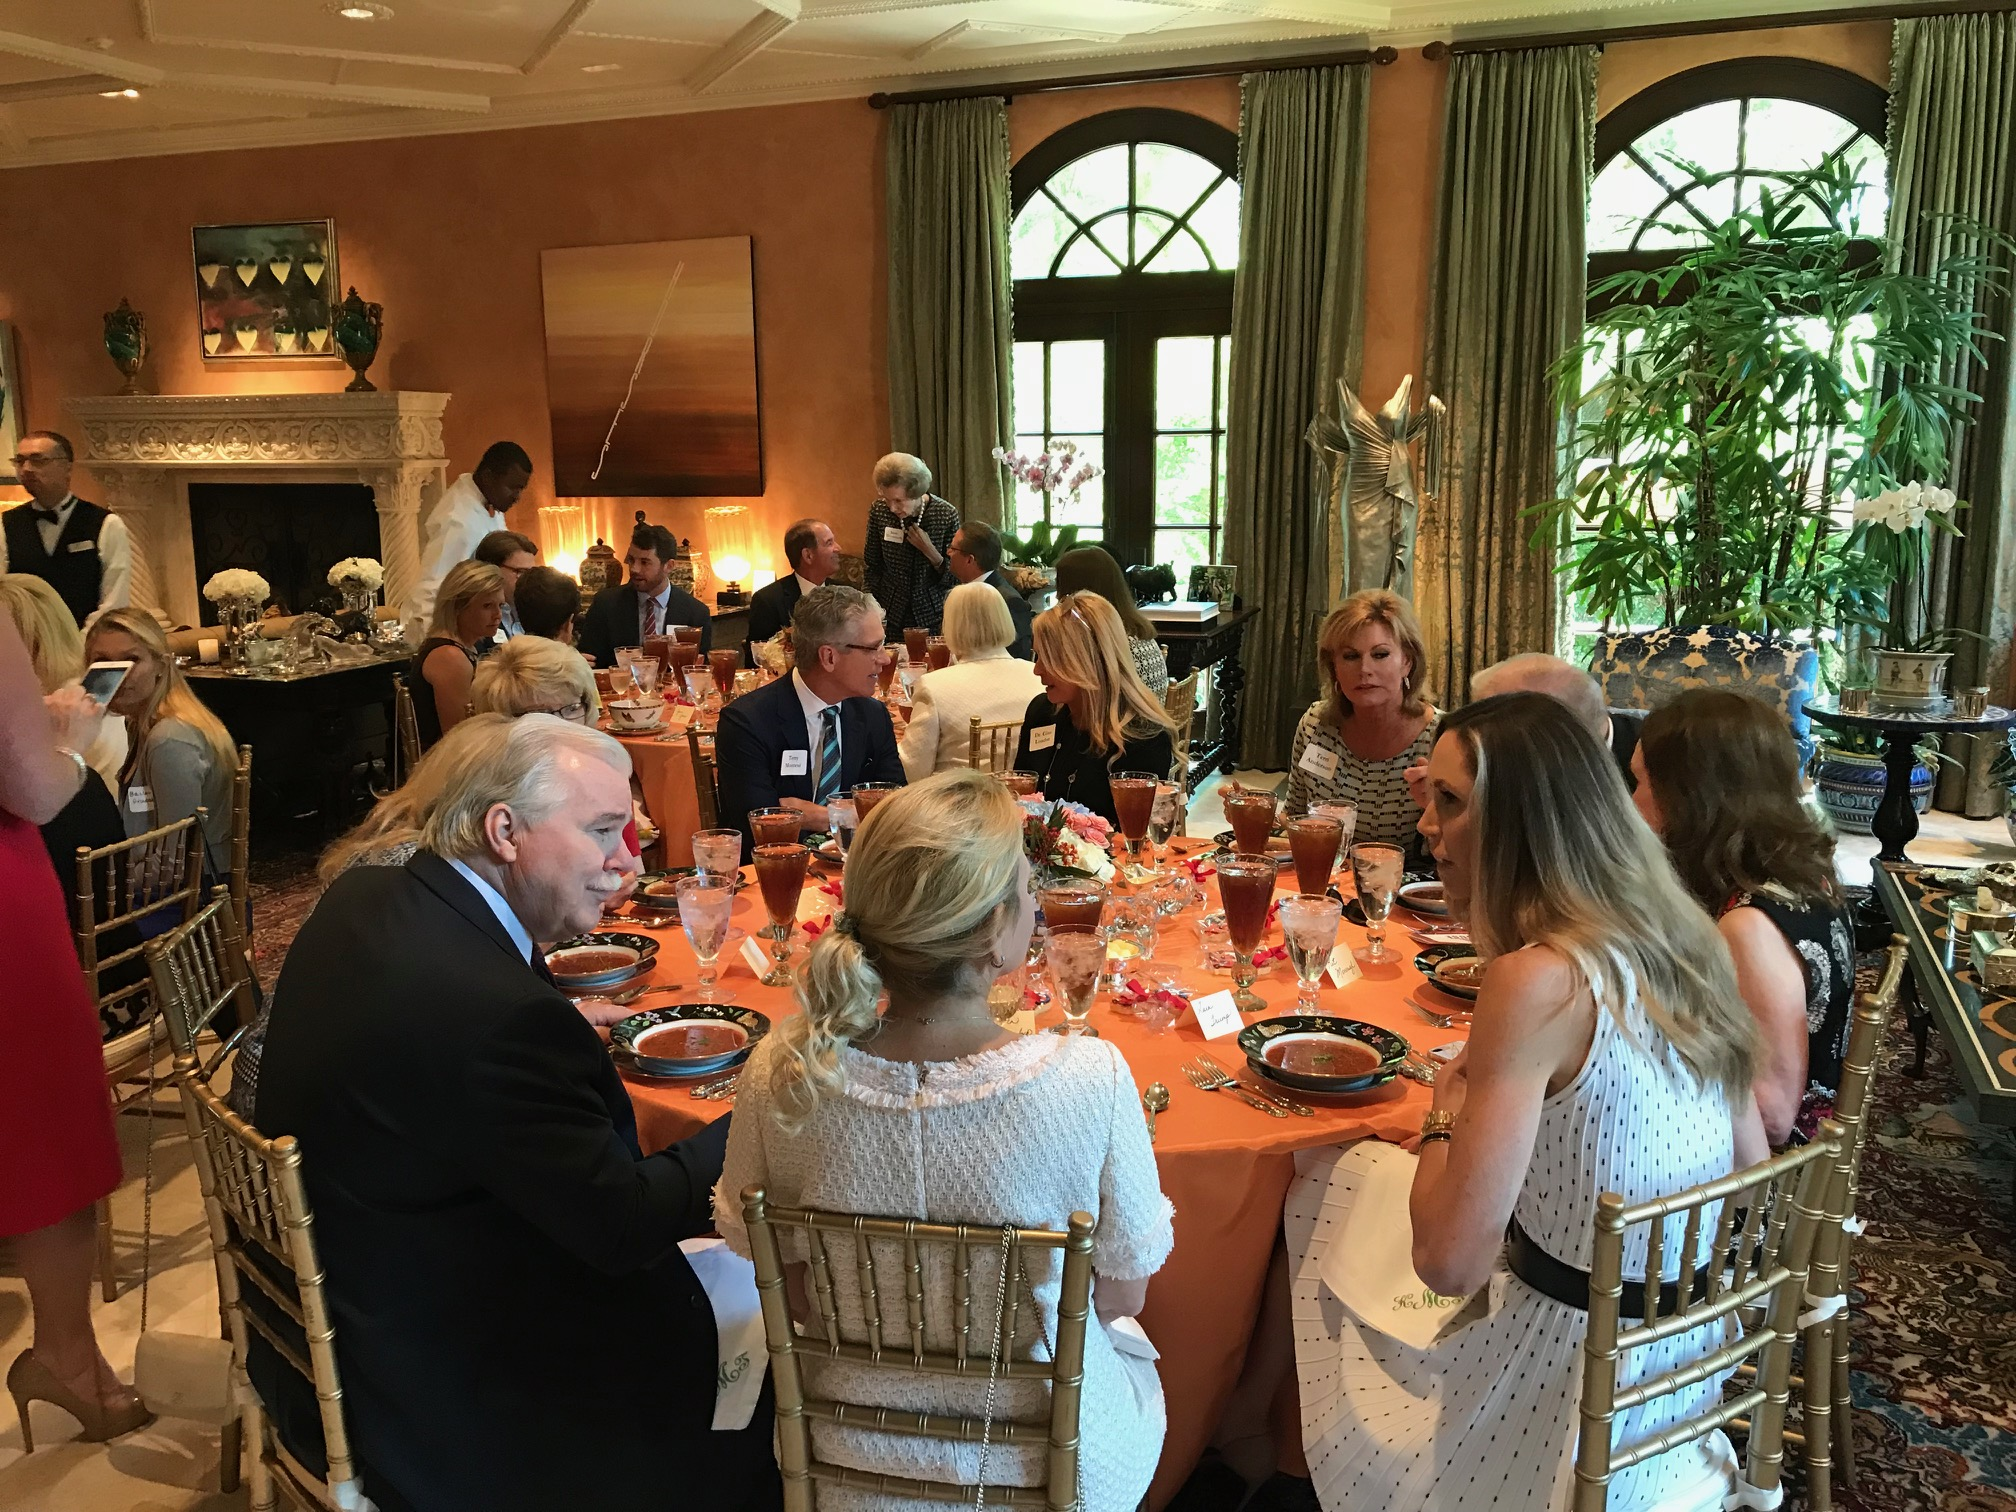 Trump Victory luncheon in Fort Worth with Lara Trump on June 21, 2018.